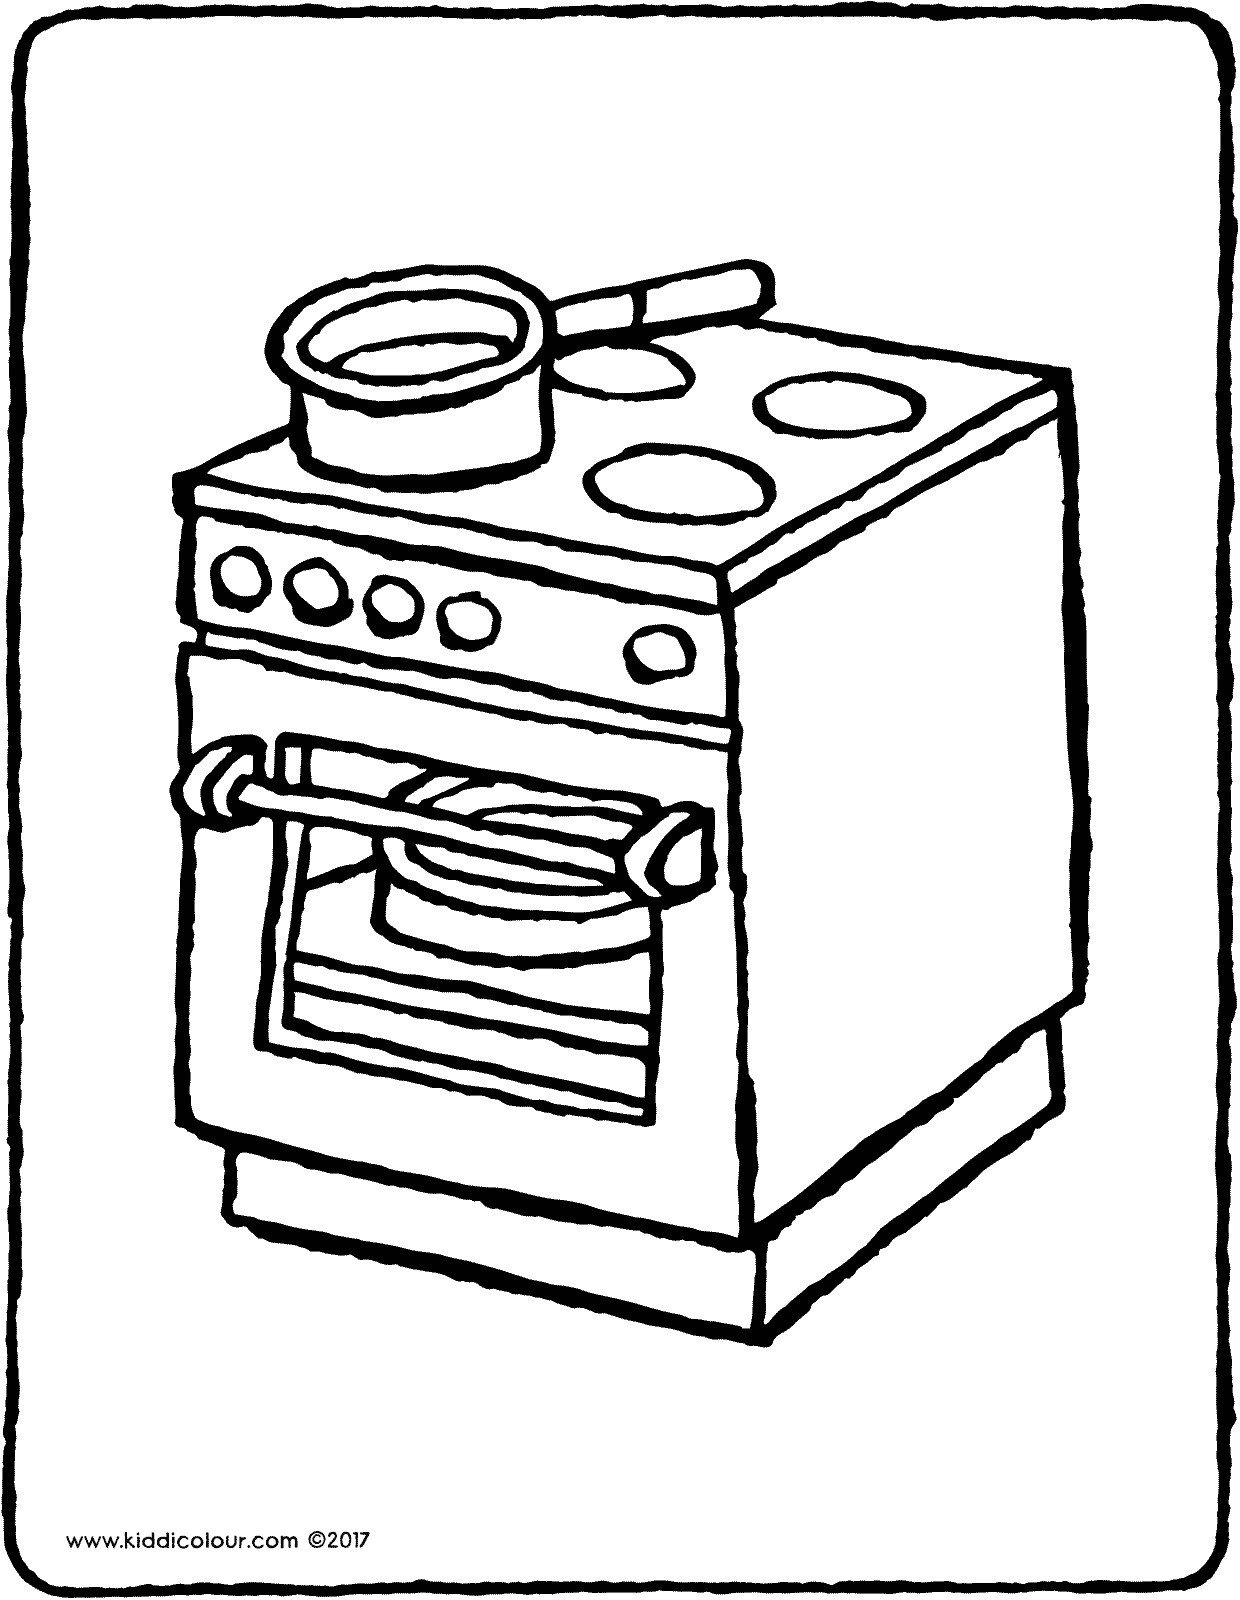 1240x1600 Cooker Colouring Page Oven Coloring